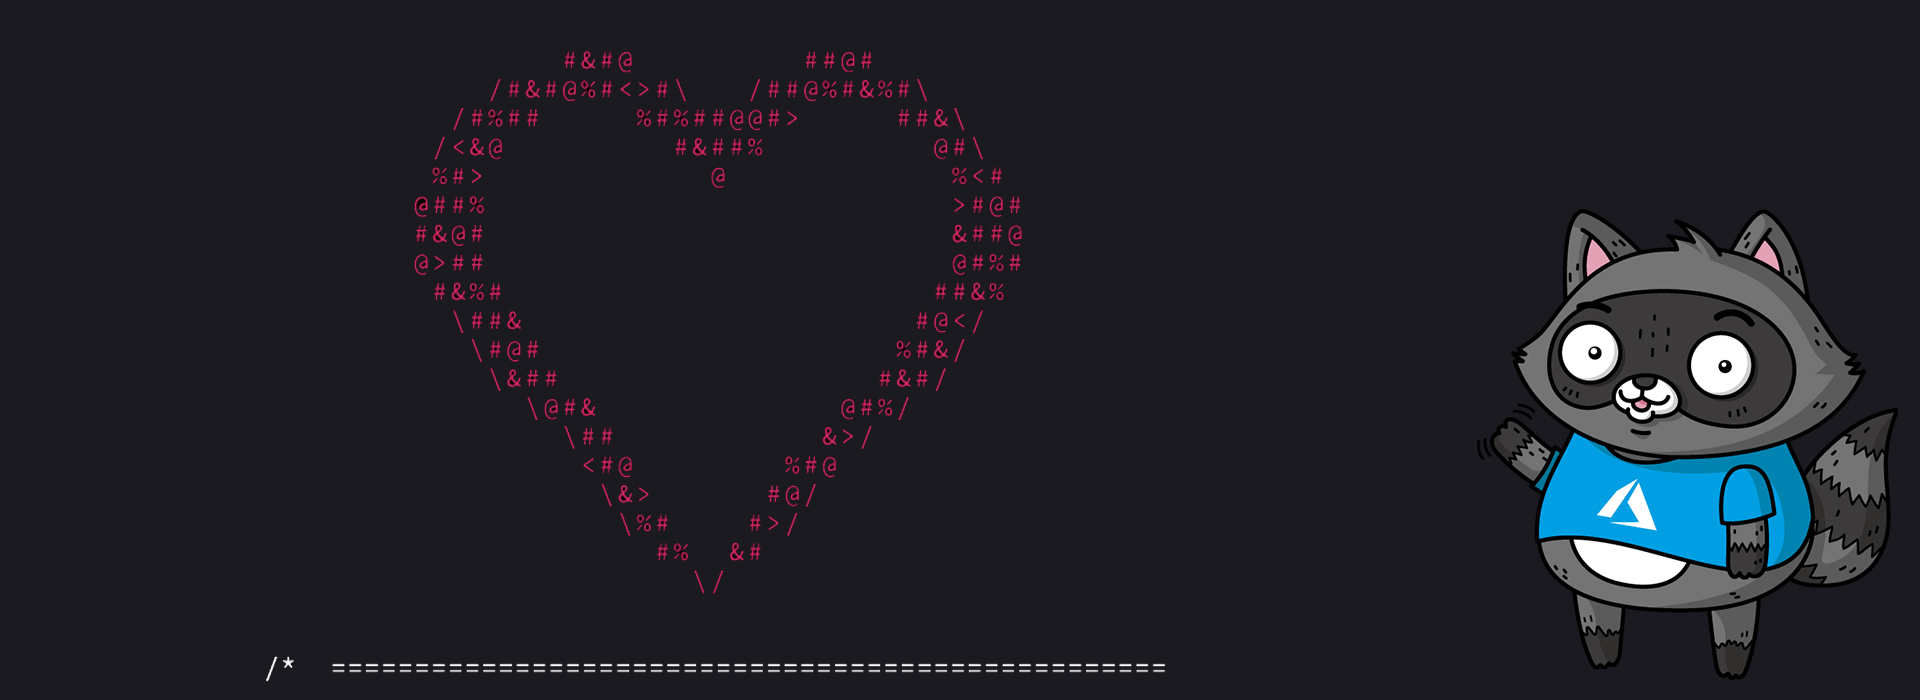 An ASCII image of a heart, next to an image of Bit the Raccoon.